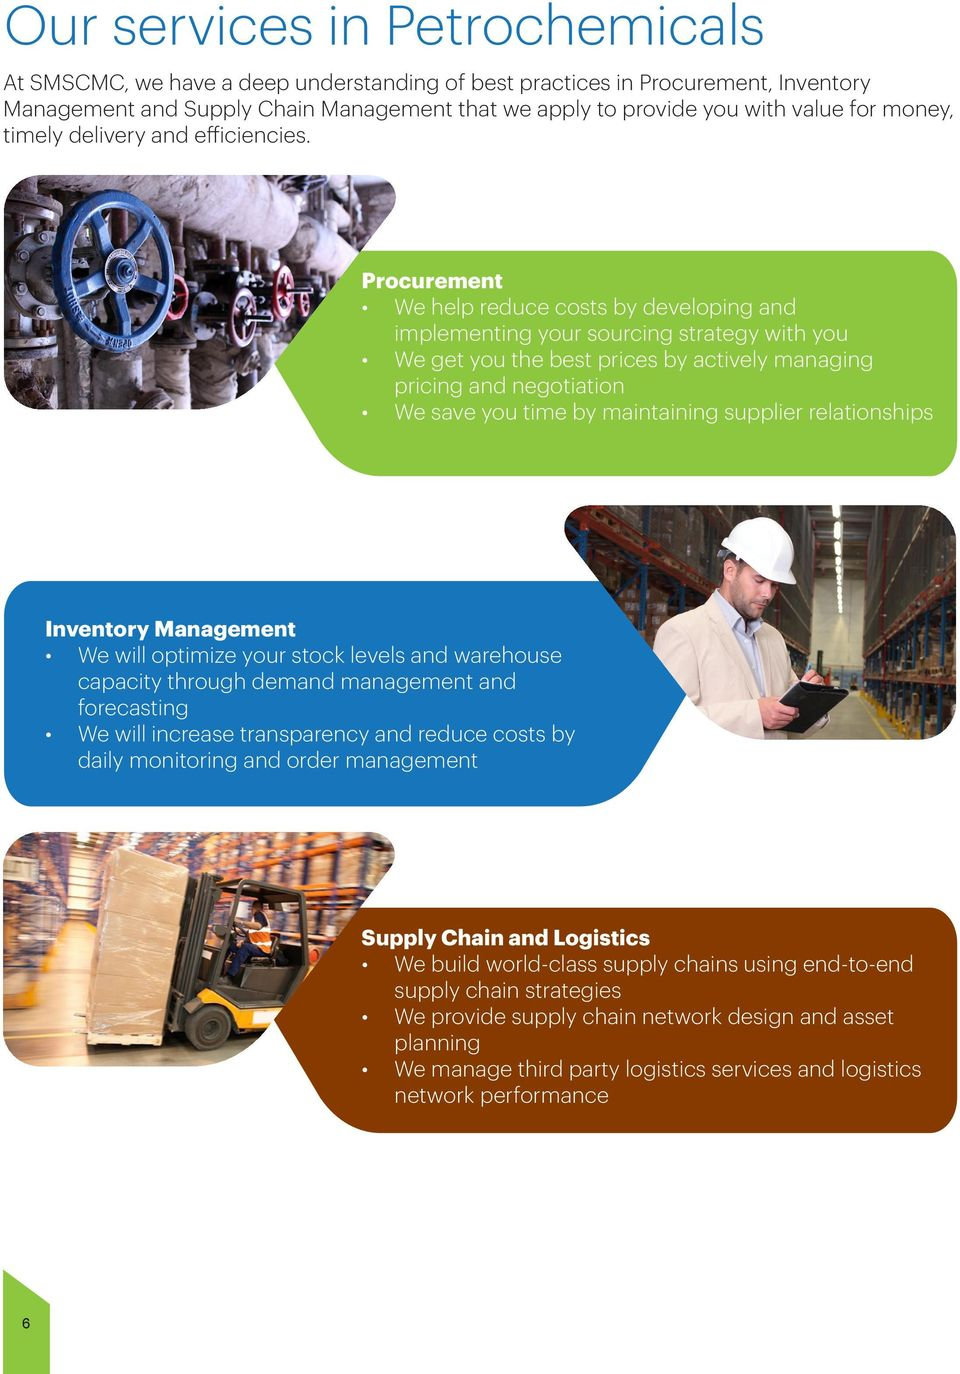 Procurement, Inventory Management and Supply Chain solutions